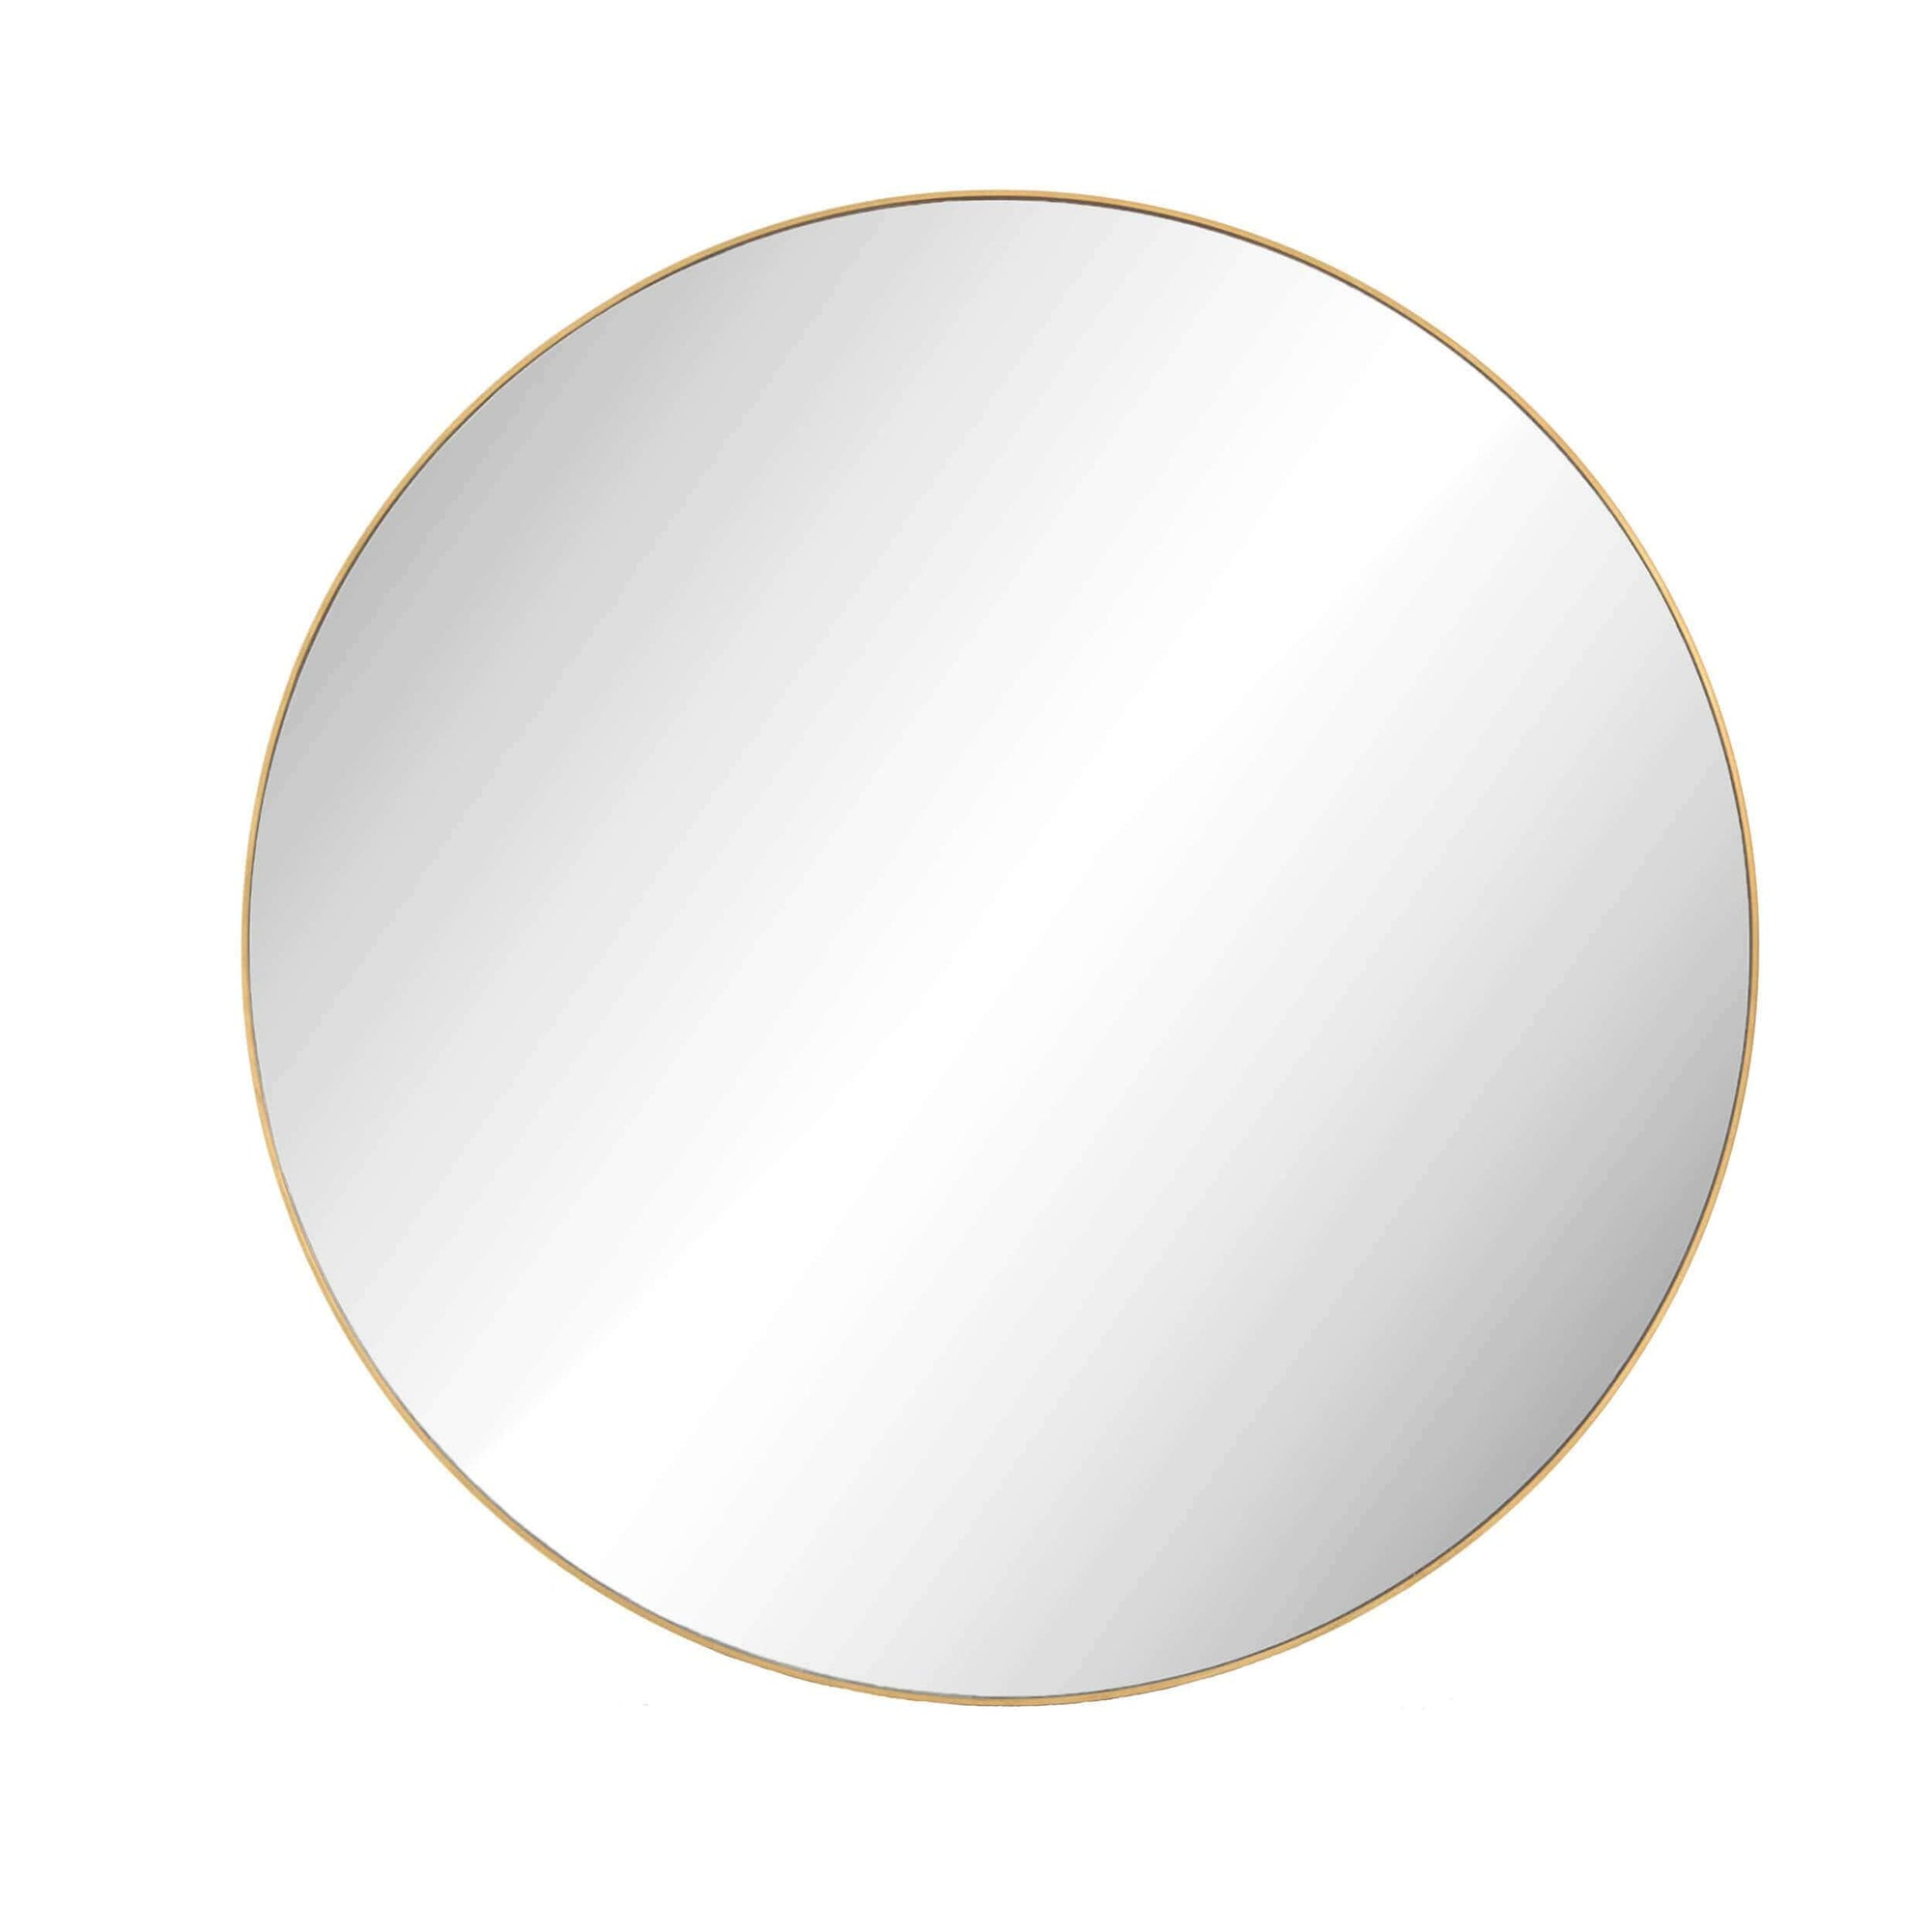 Bellvue Large Round Mirror Polished Brass High Fashion Home